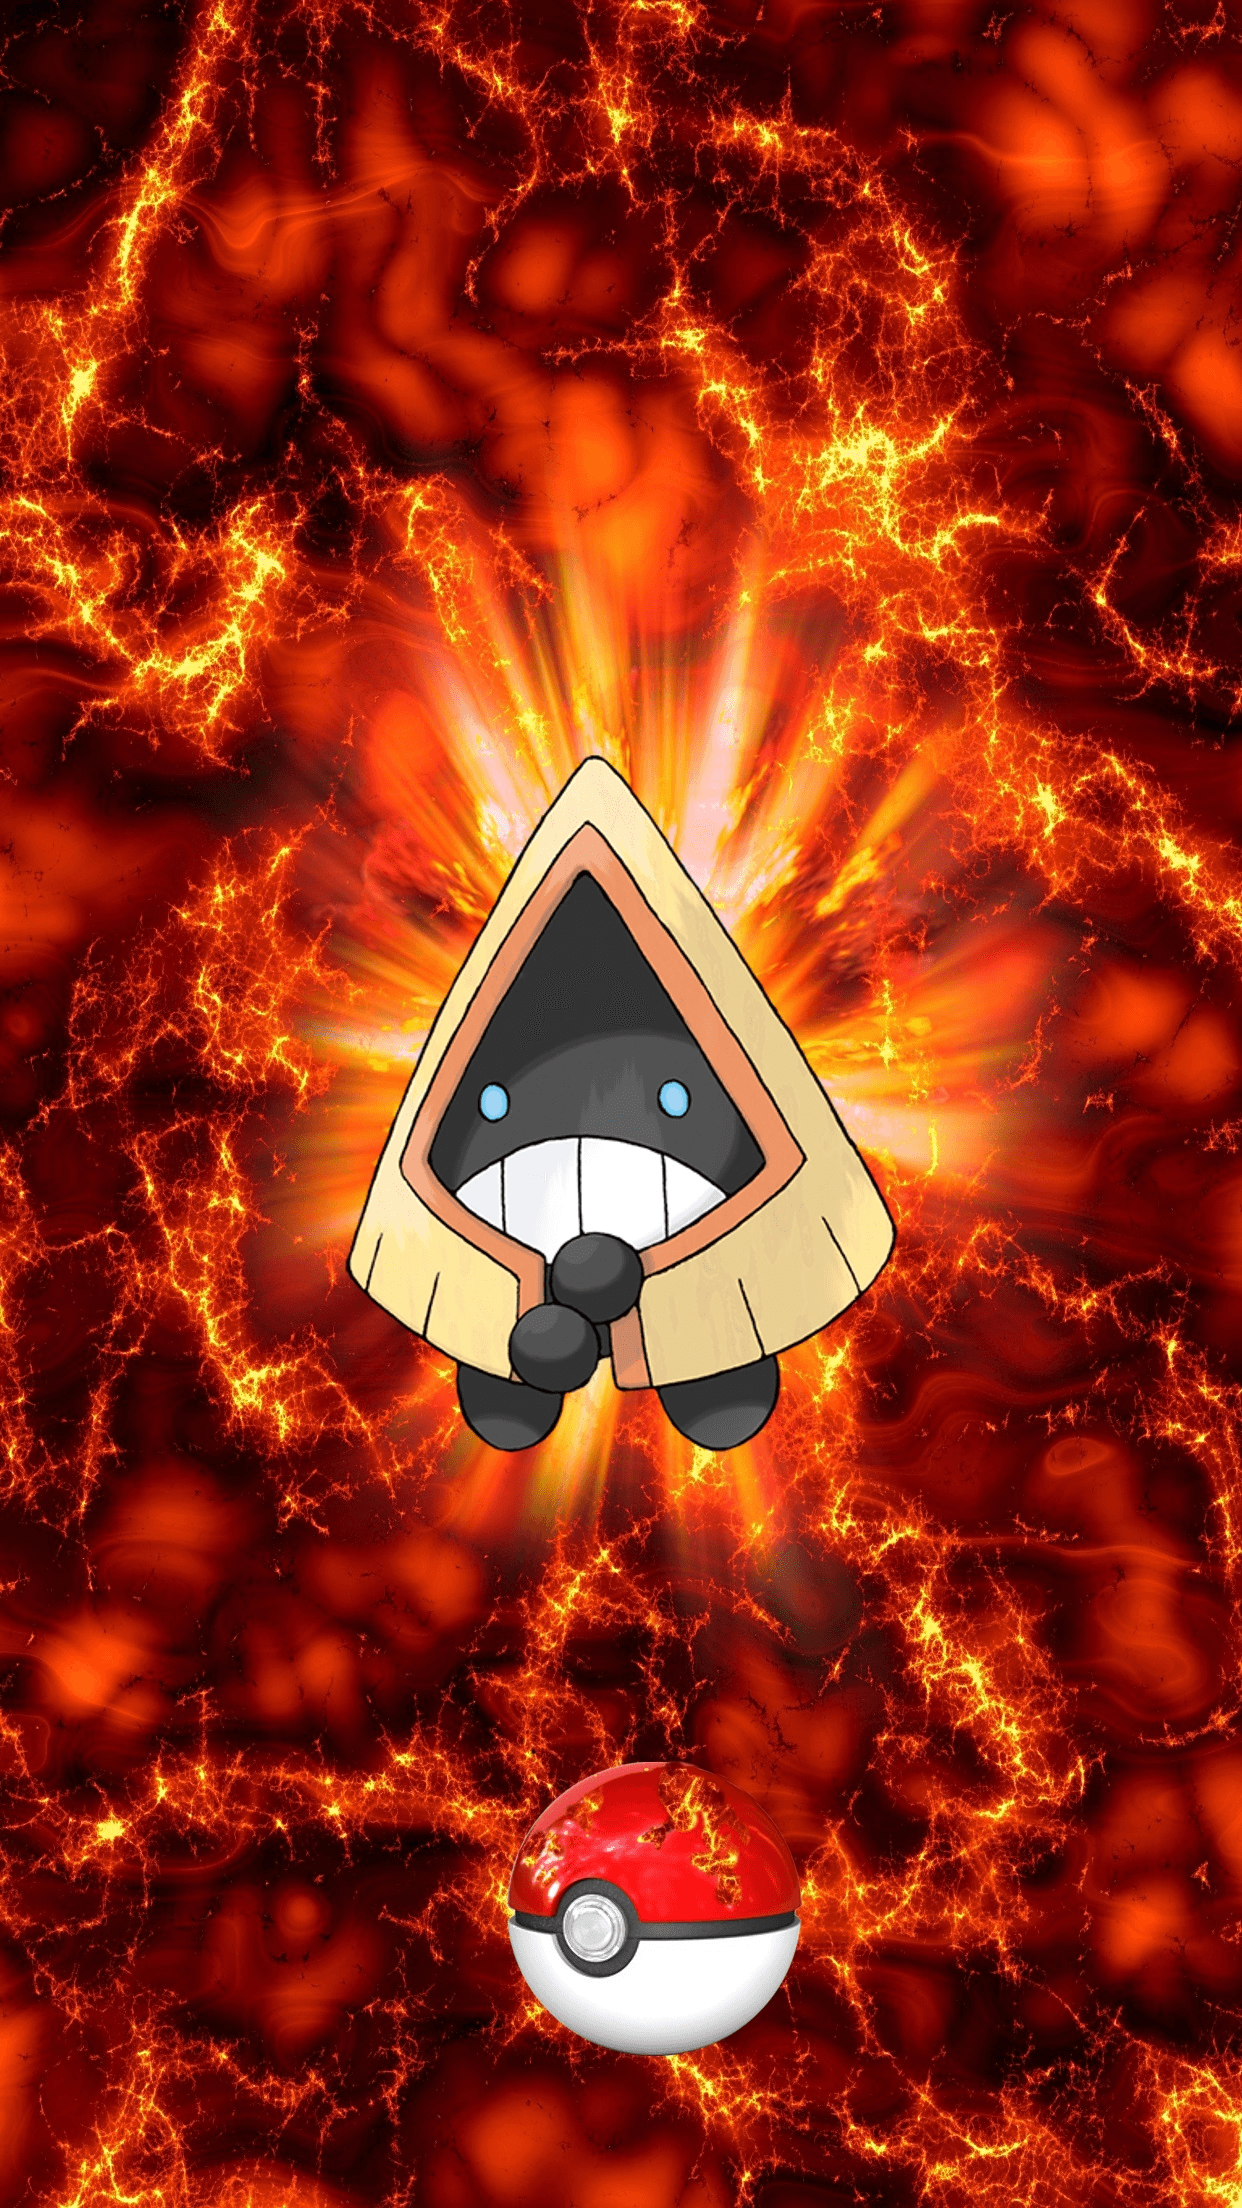 361 Fire Pokeball Snorunt Unknown Egg